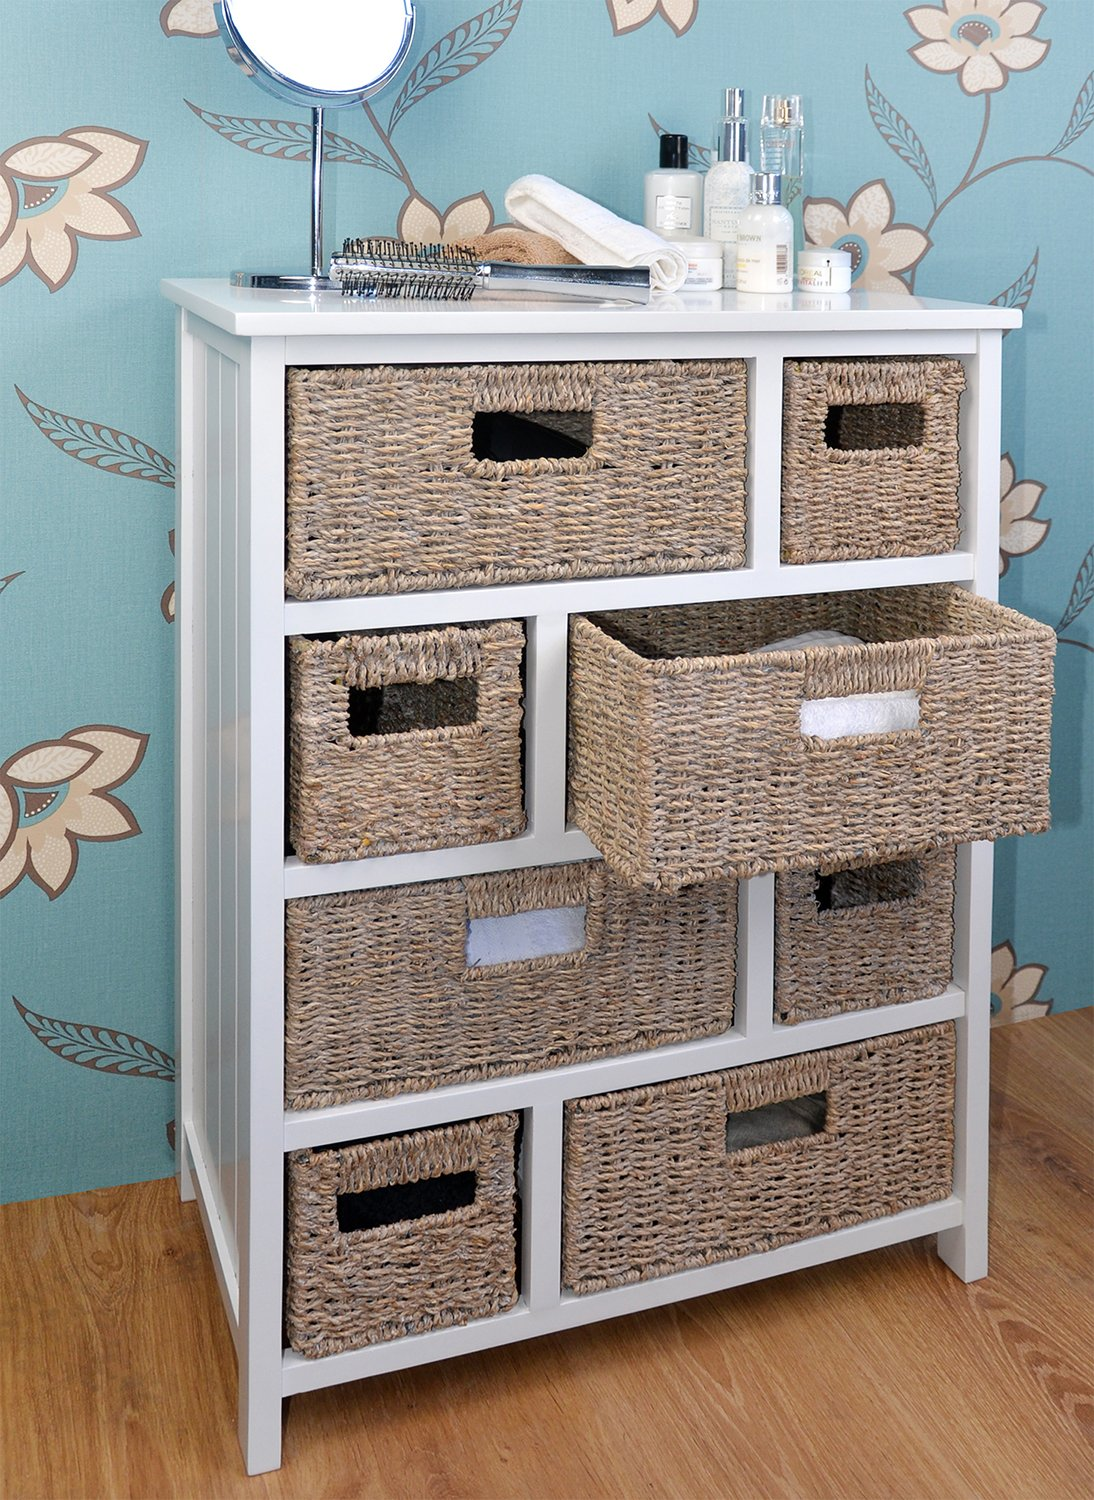 Tetbury white storage unit with 5 drawers bedroom furniture direct - Tetbury Large Chest Of Drawers With Whitewash Baskets White Hallway Bathroom Basket Storage Unit With Solid Sides And Back Fully Assembled